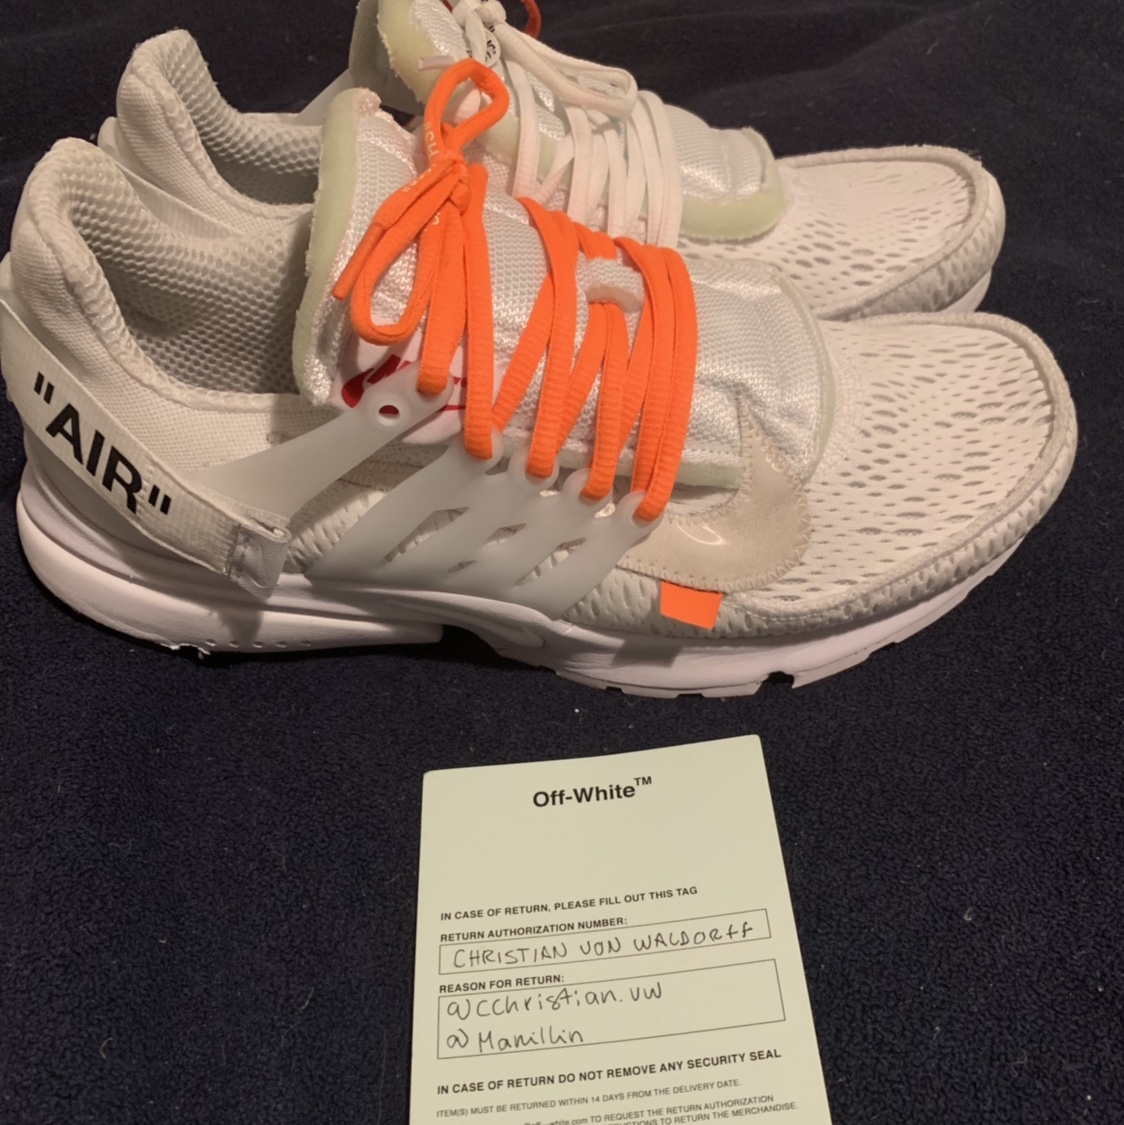 Nike Air Presto X Off White Size 10 Cond. (910) Depop